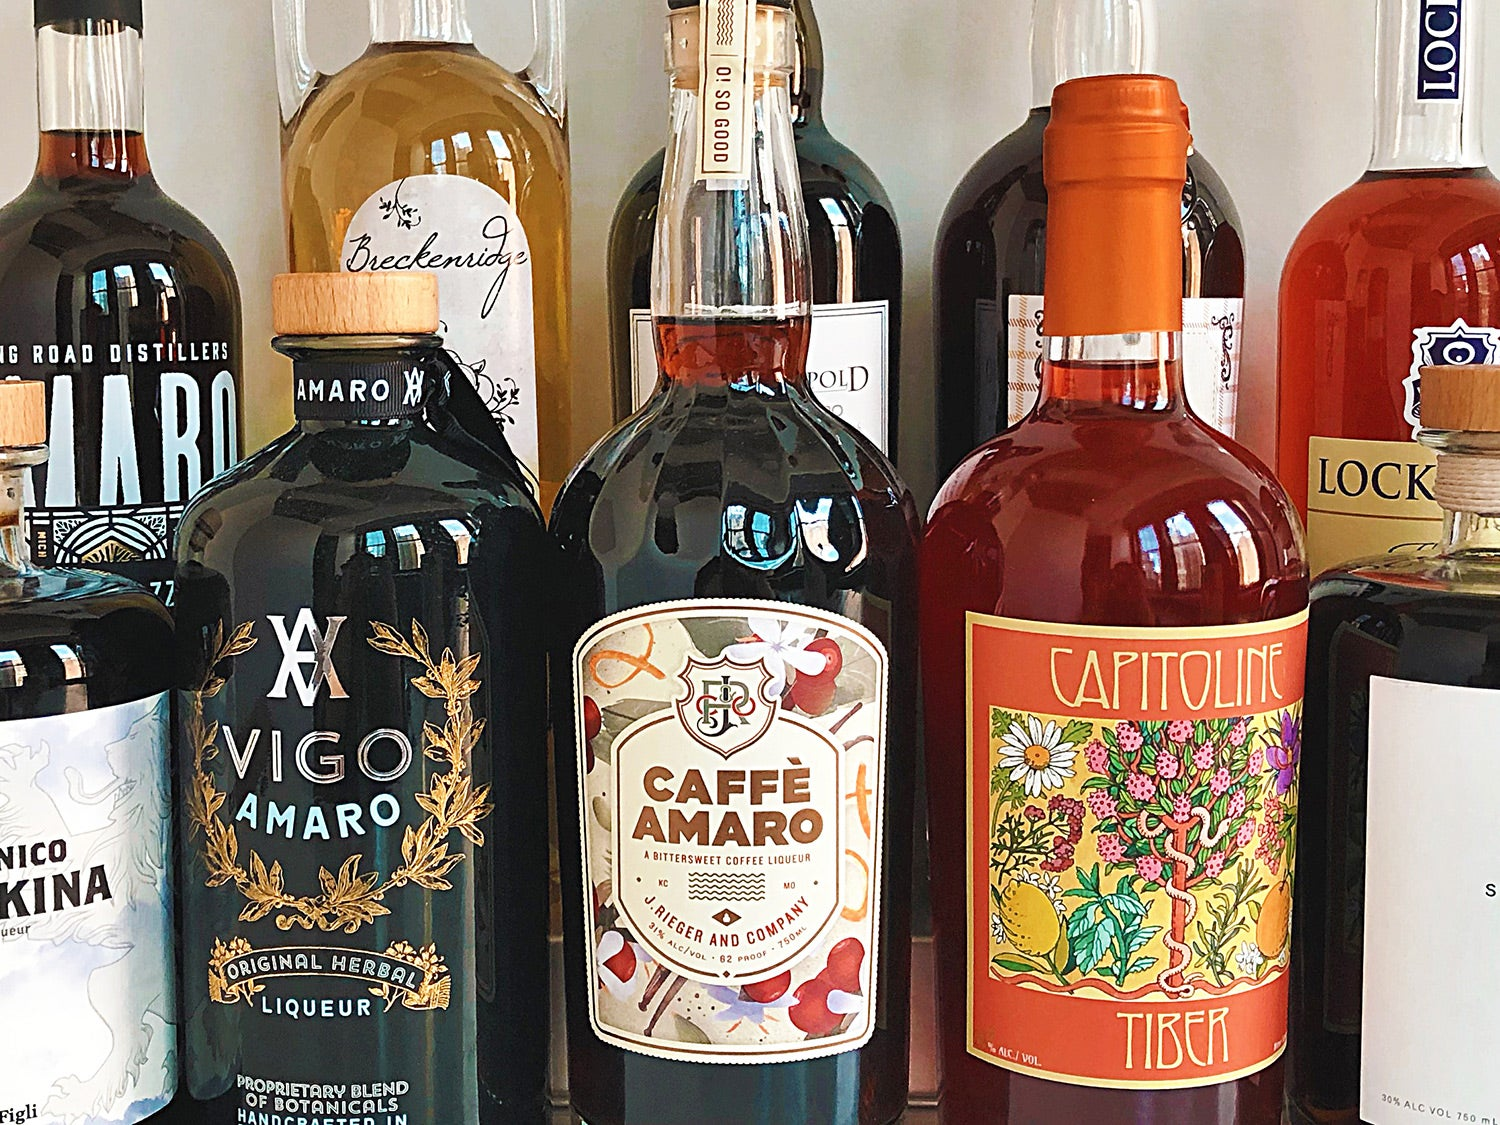 The 10 Best American Amaro Bottles to Drink Right Now